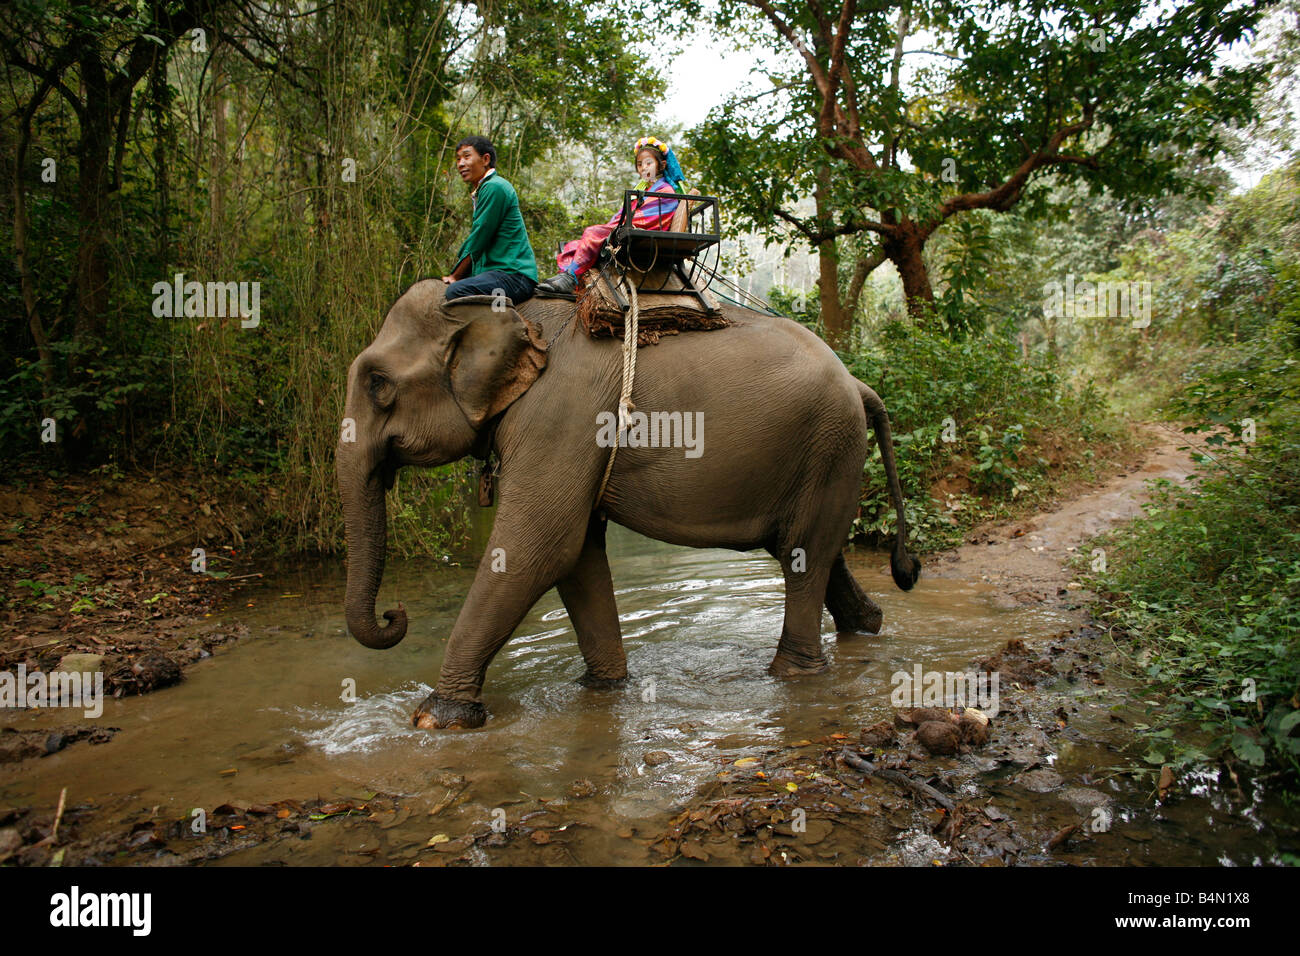 An elephant carries two Longneck group members crosses a stream Approximately 300 Burmese refugees in Thailand are - Stock Image